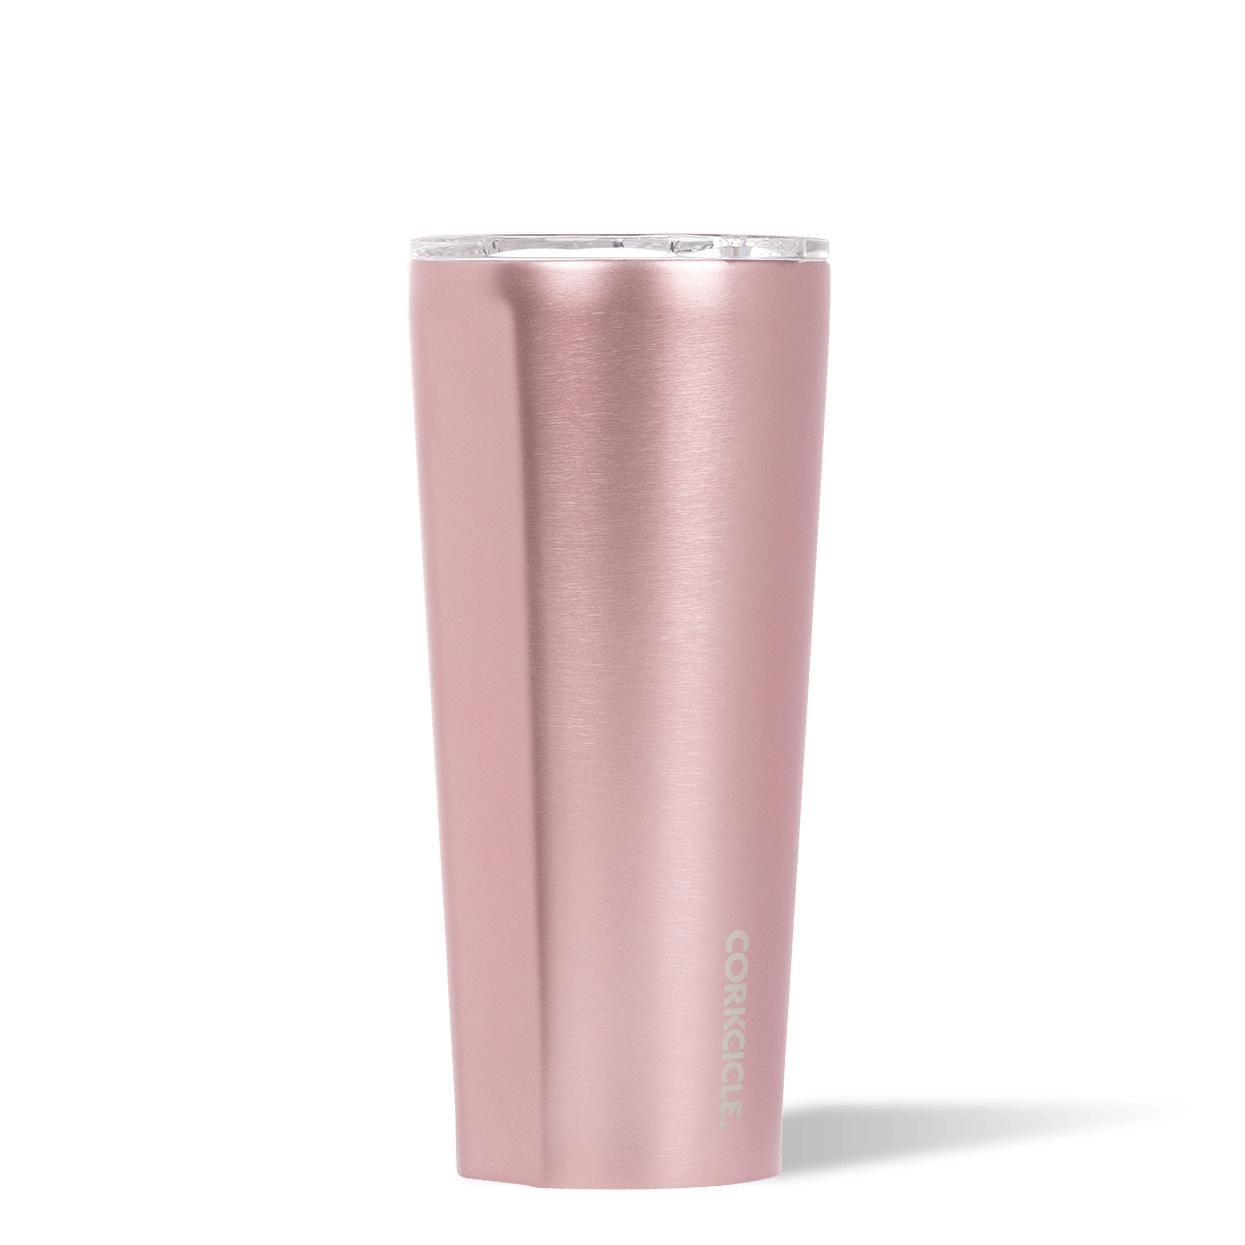 Corkcicle 24oz Rosé Metallic Tumbler Side View.